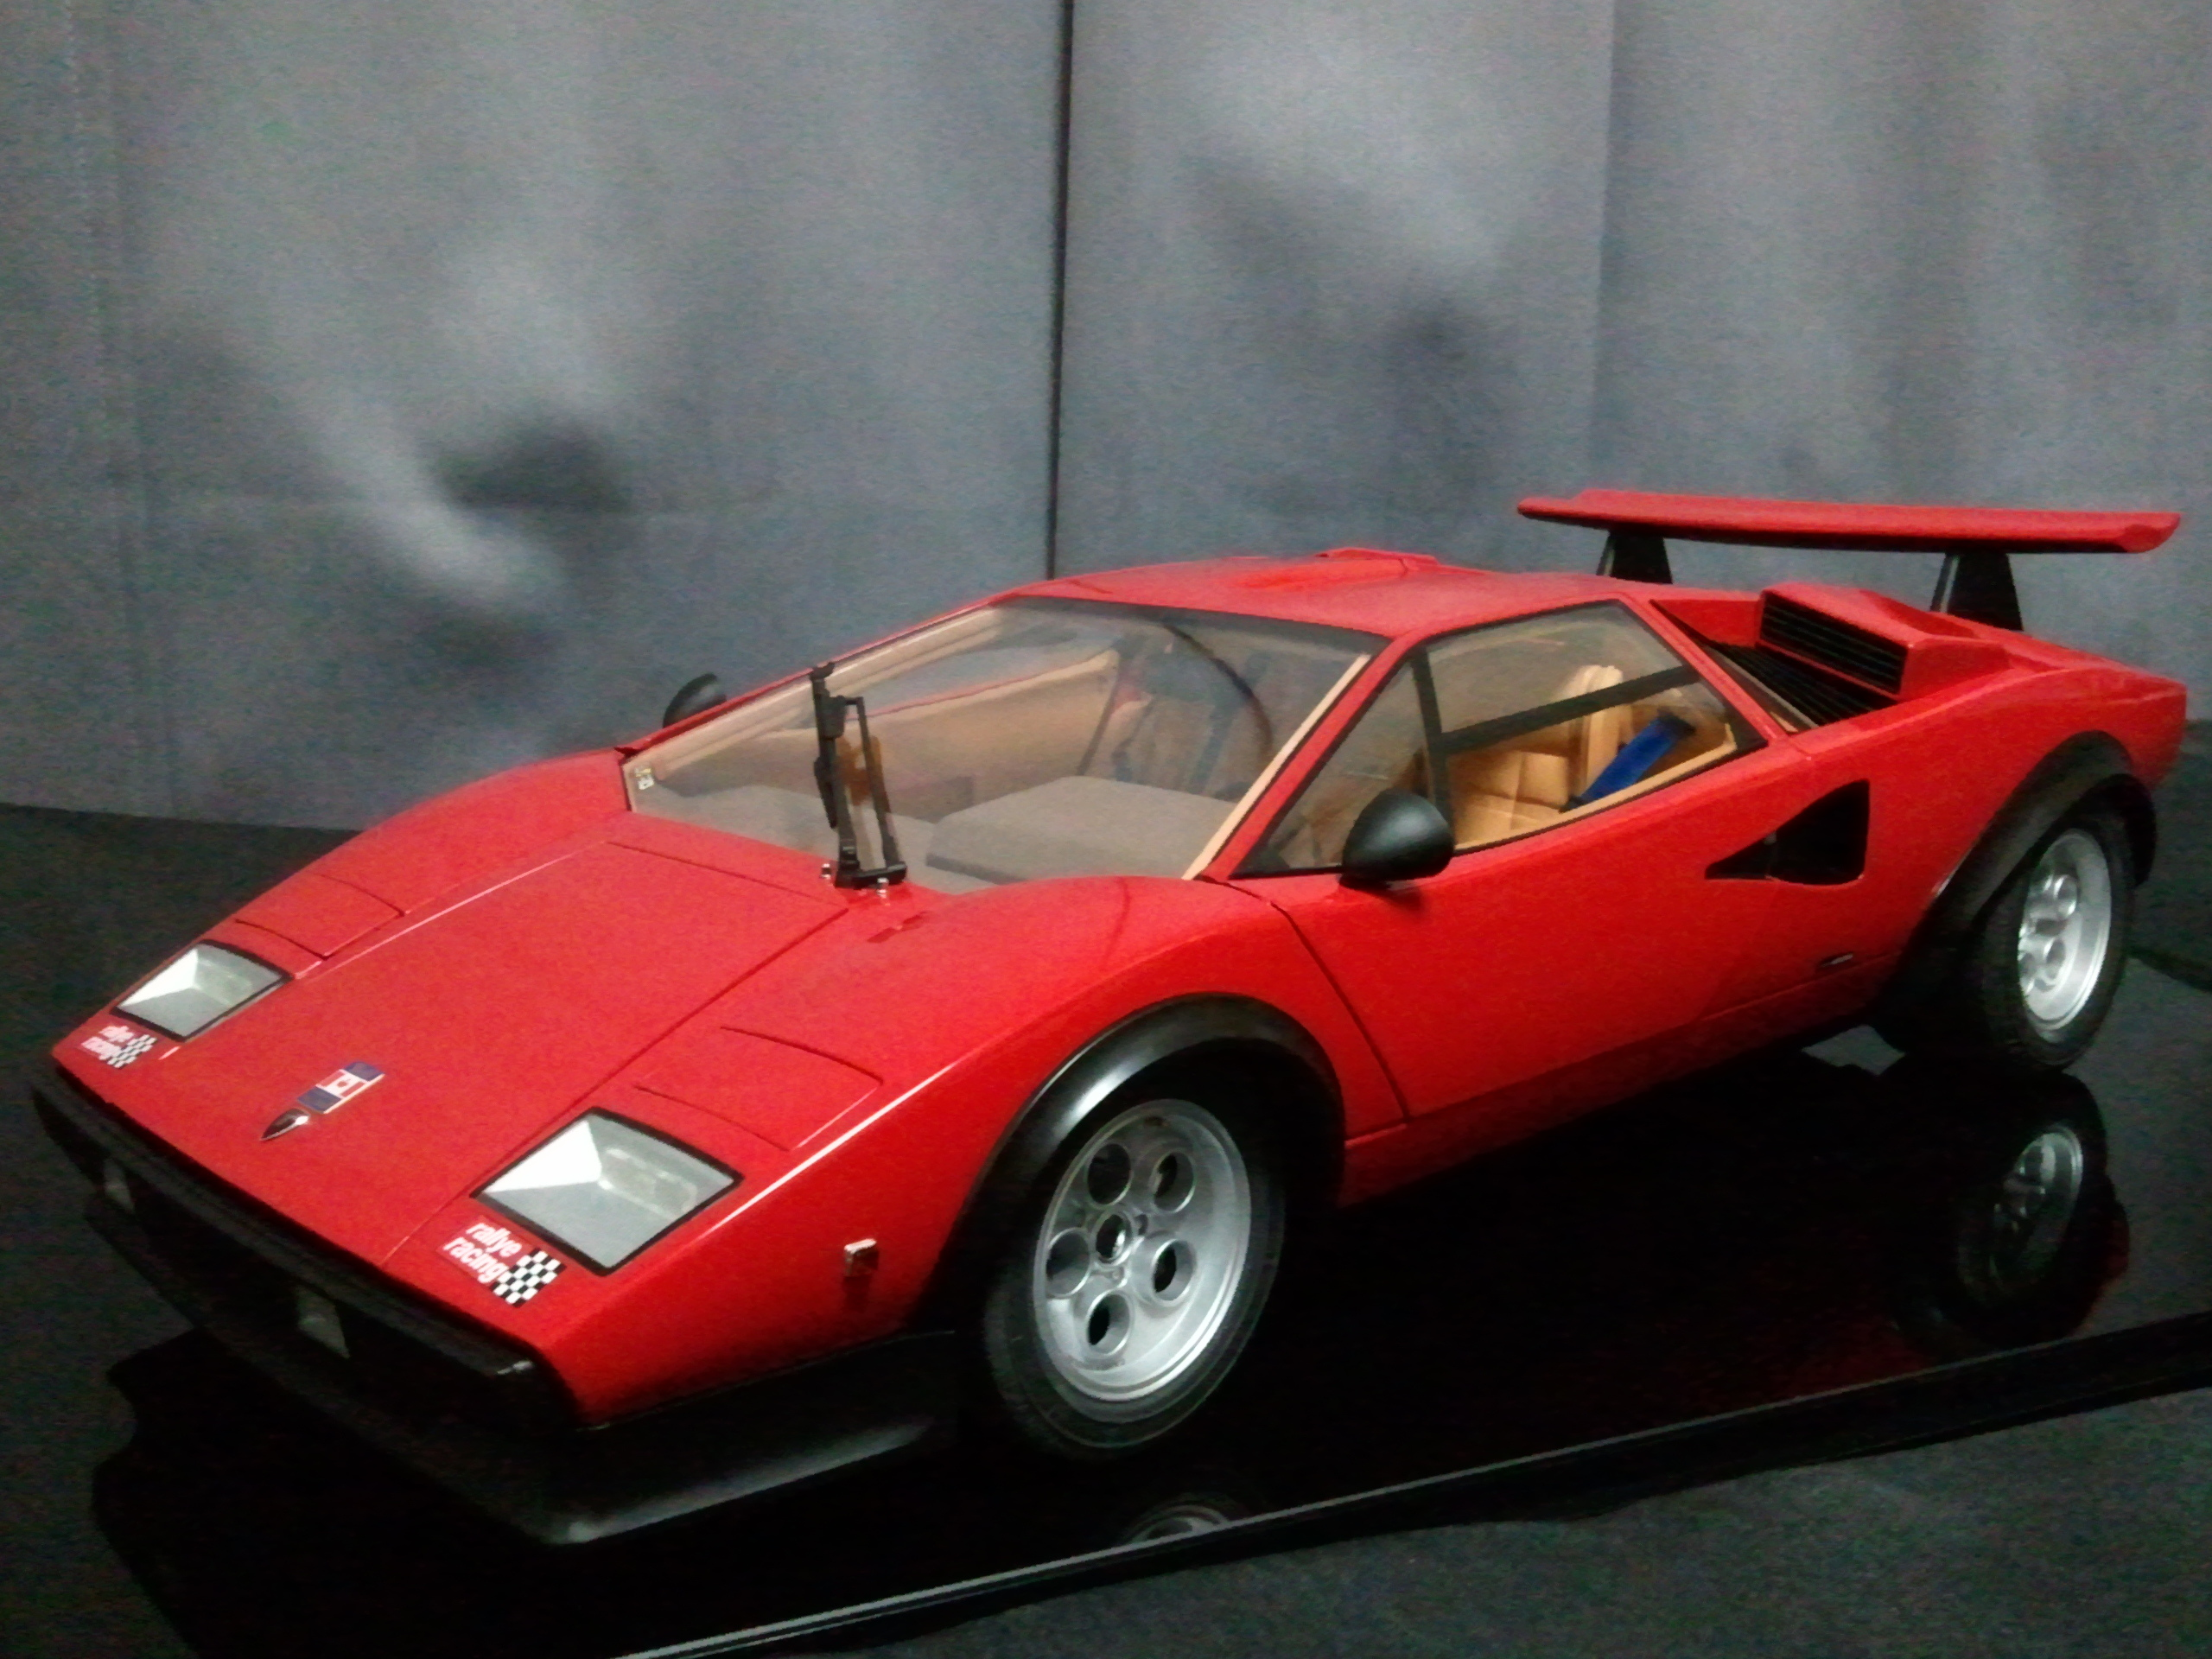 deagostini lamborghini countach lp500s walter wolf 1 8 scale model kit set ebay. Black Bedroom Furniture Sets. Home Design Ideas